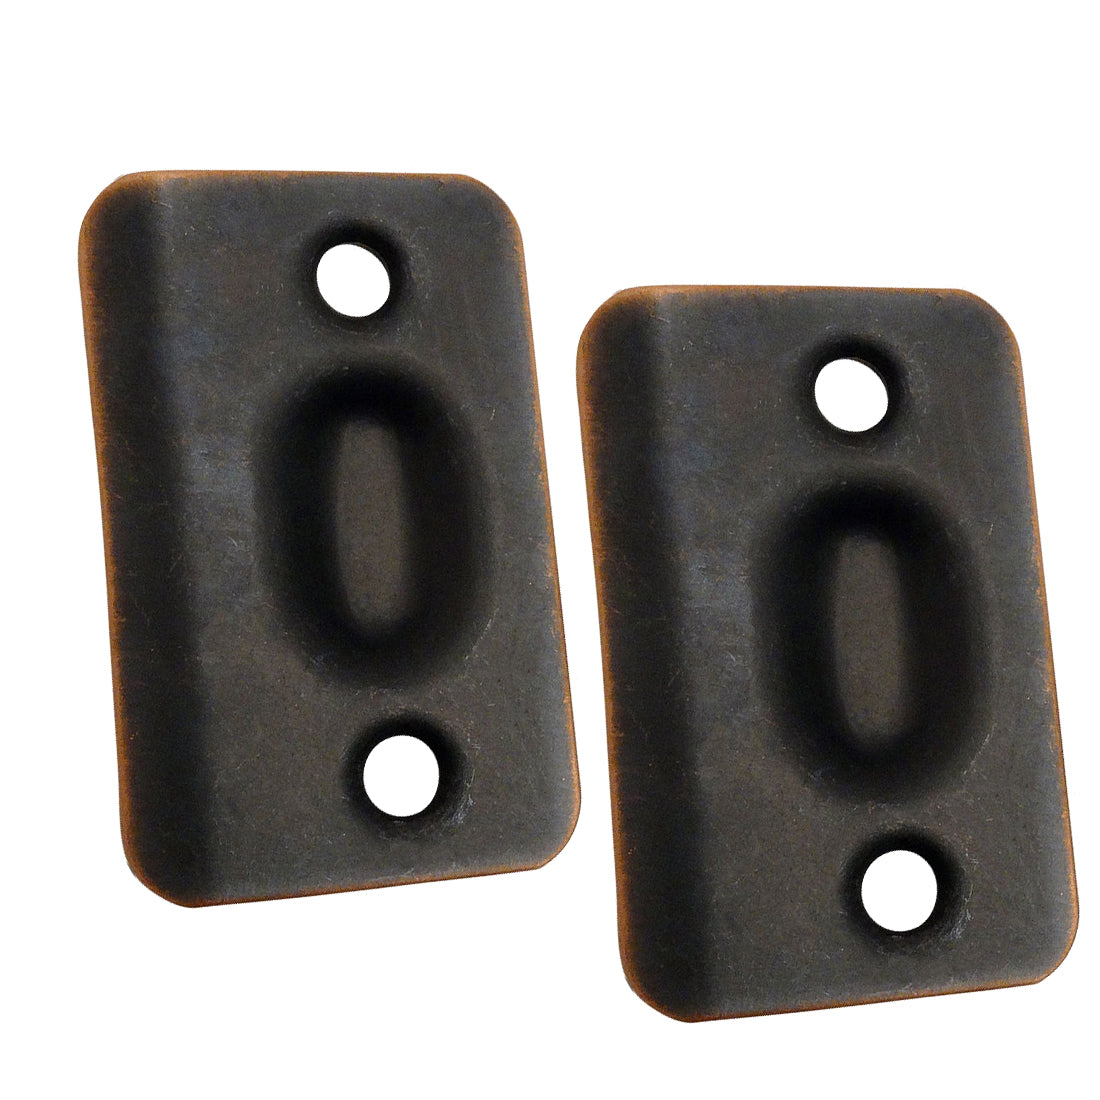 Oil Rubbed Bronze Replacement Ball Catch Strike Plates (Pair)